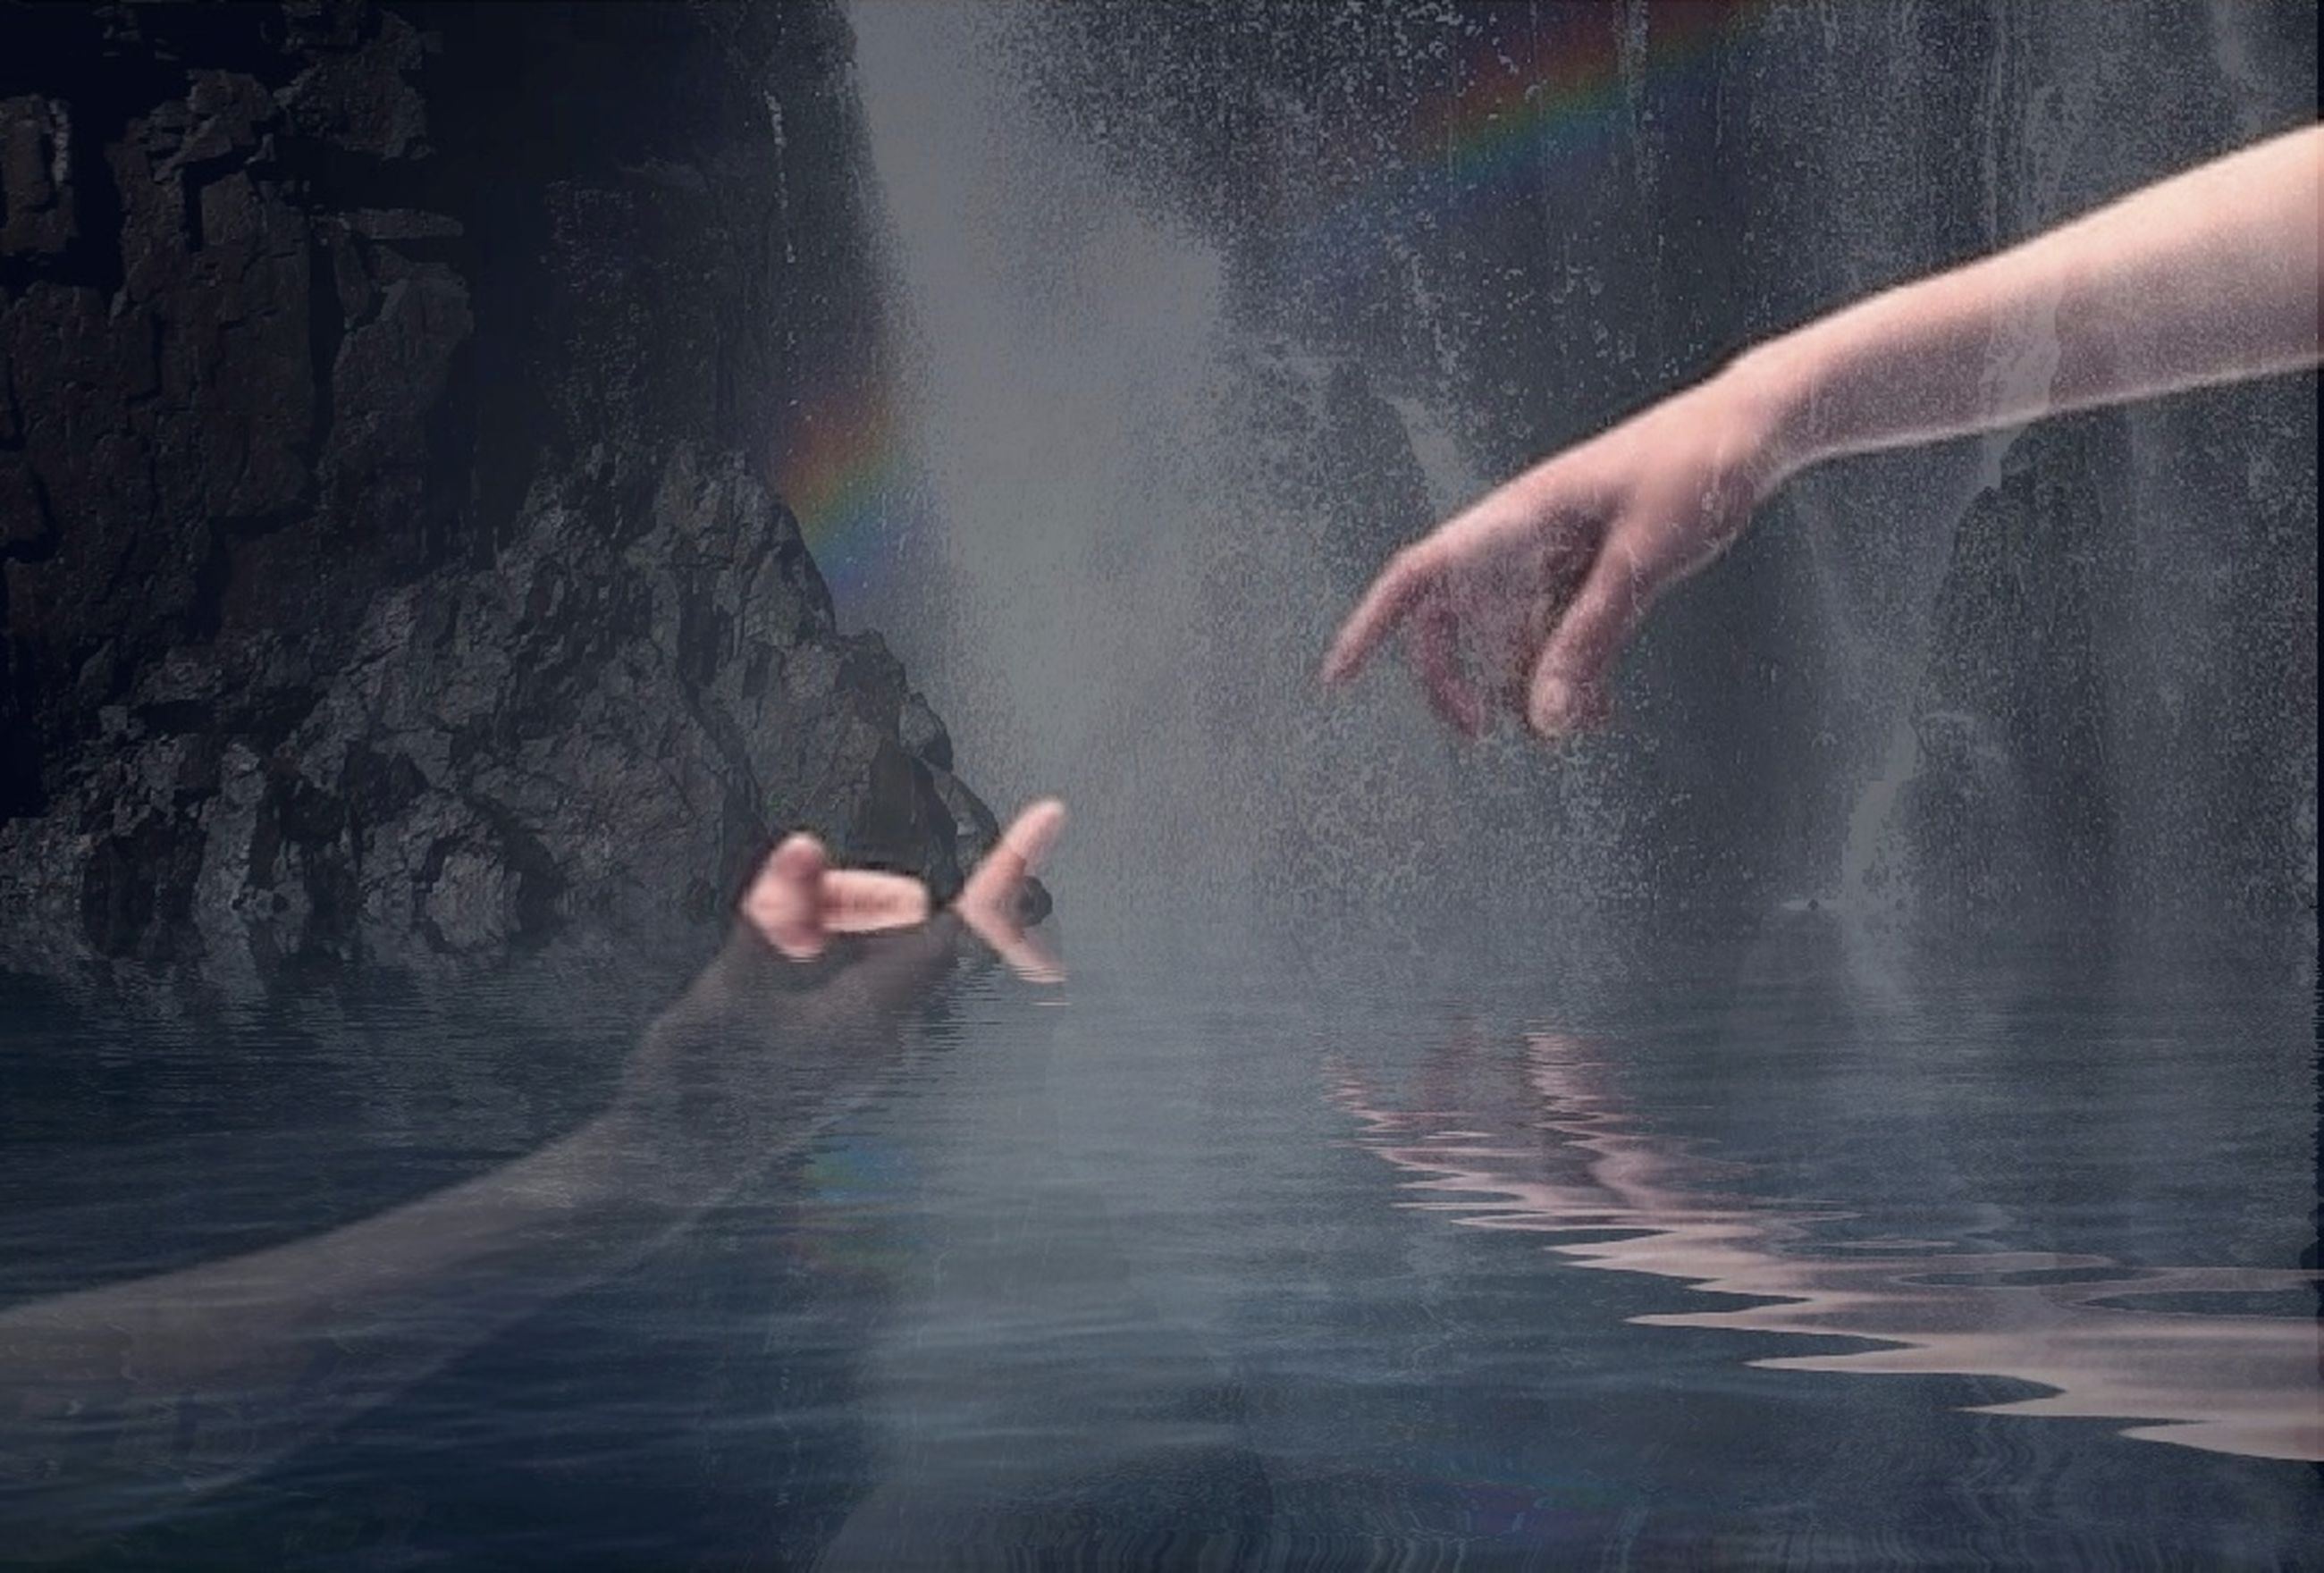 human body part, human hand, hand, water, two people, body part, people, motion, nature, togetherness, blurred motion, outdoors, emotion, sport, adult, positive emotion, day, touching, swimming, human limb, finger, effort